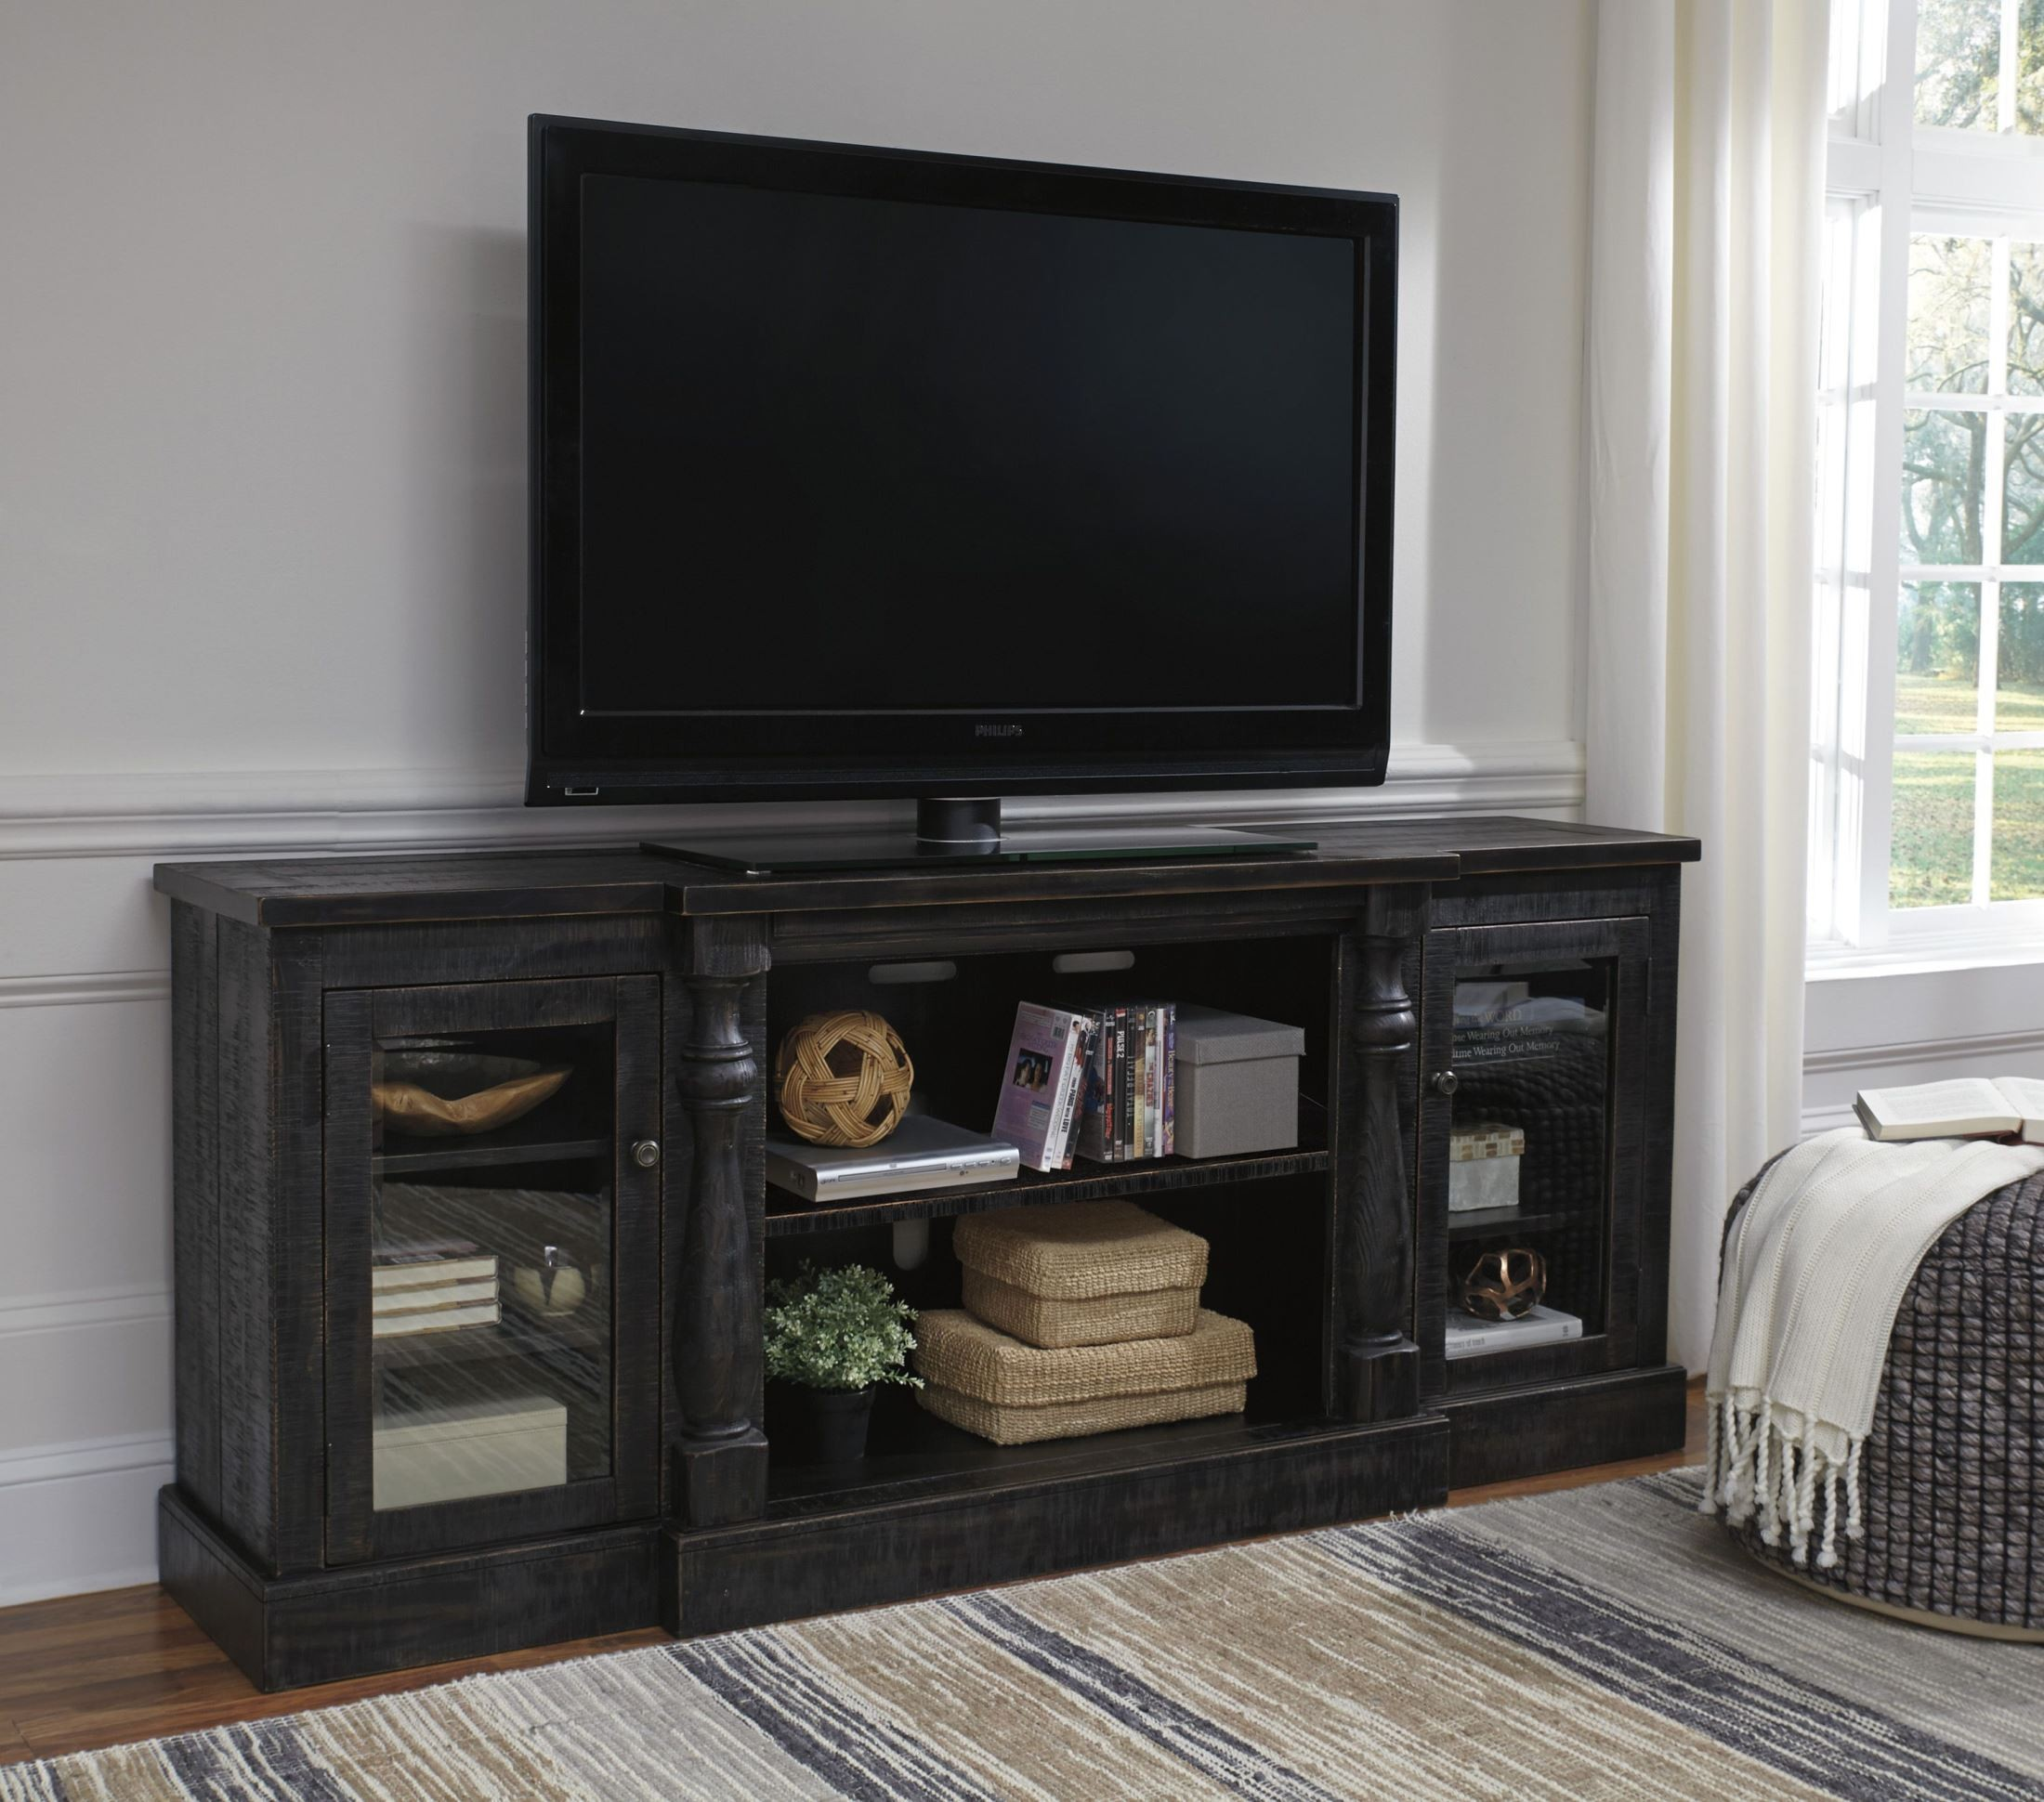 Direct Plus Furniture: Mallacar Black Rub Through XL TV Stand With Fireplace